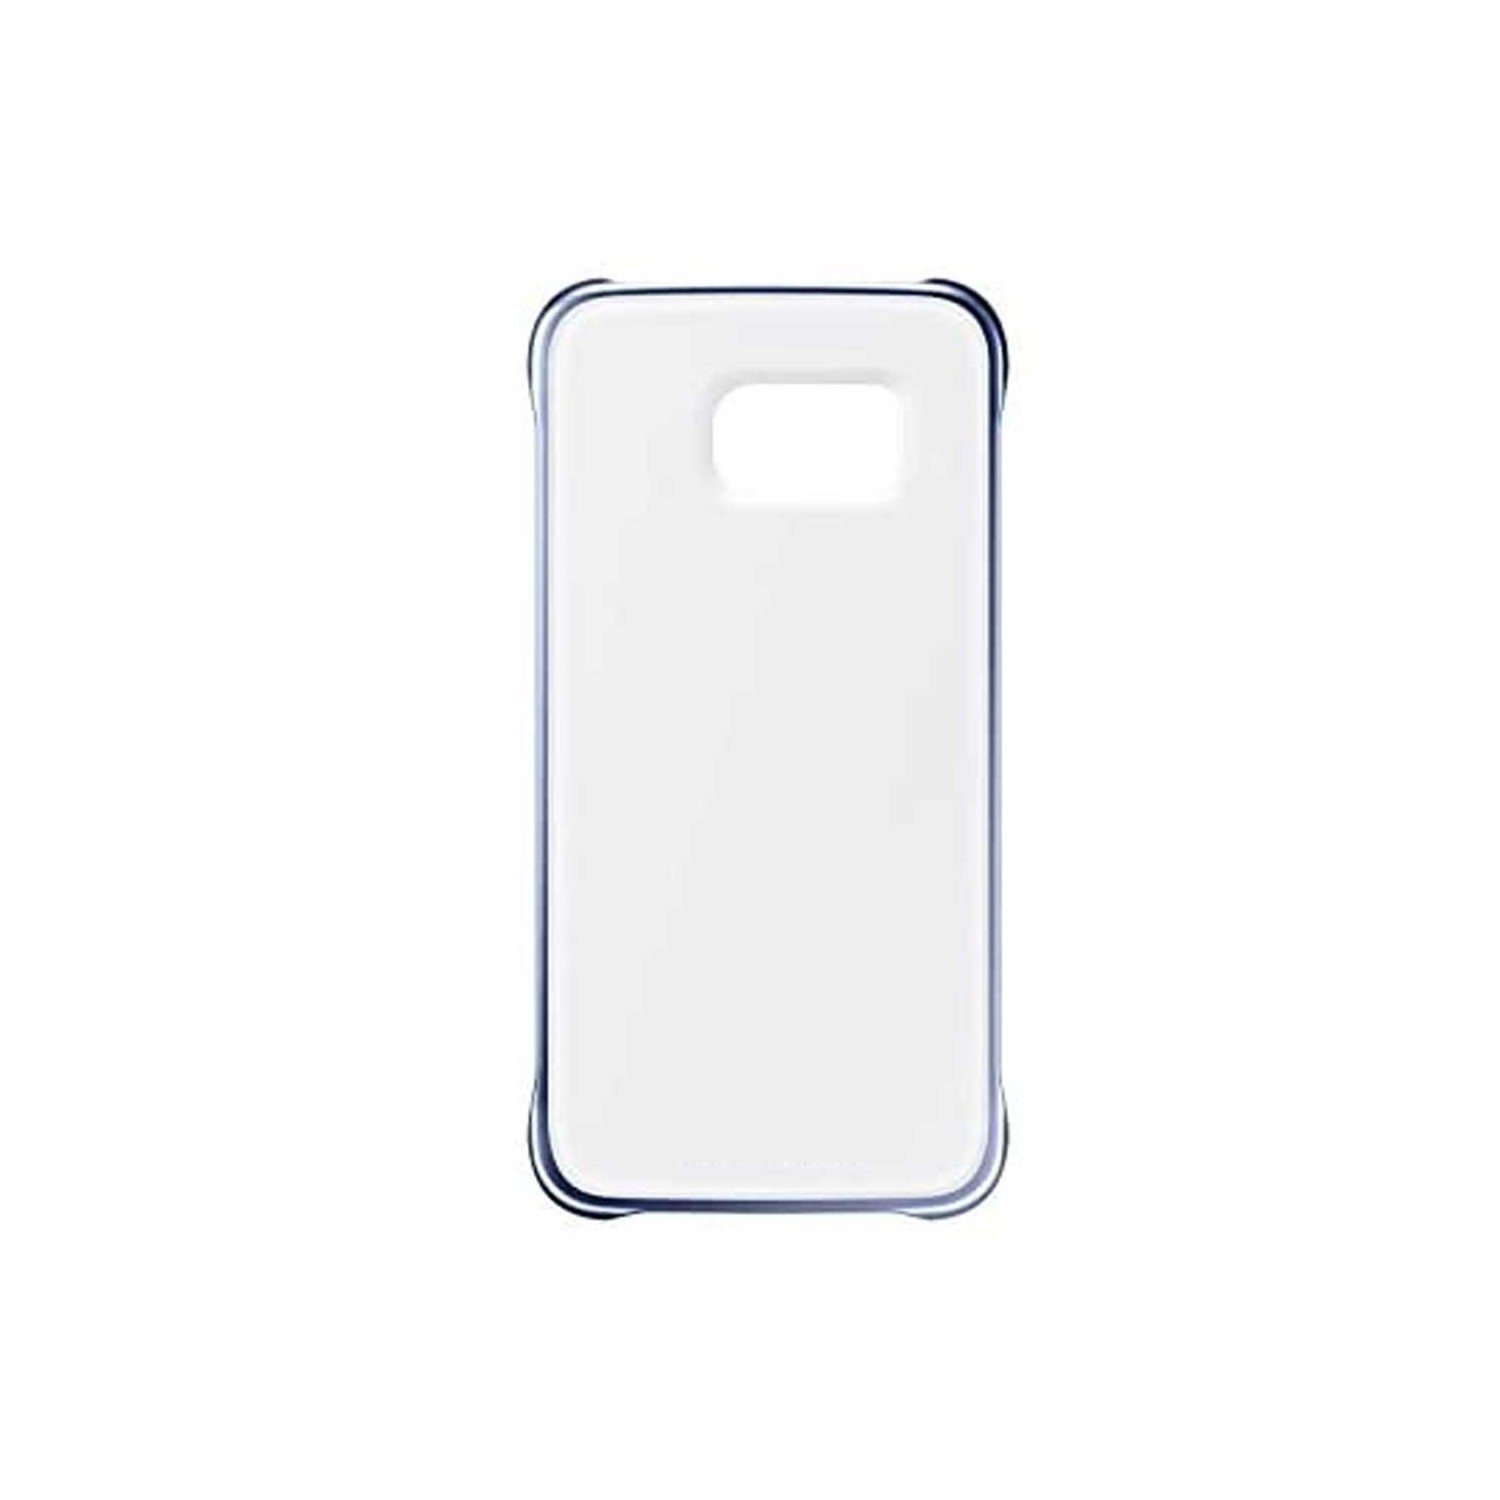 Case - Galaxy S6 EDGE Protective cover Clear Sapphire